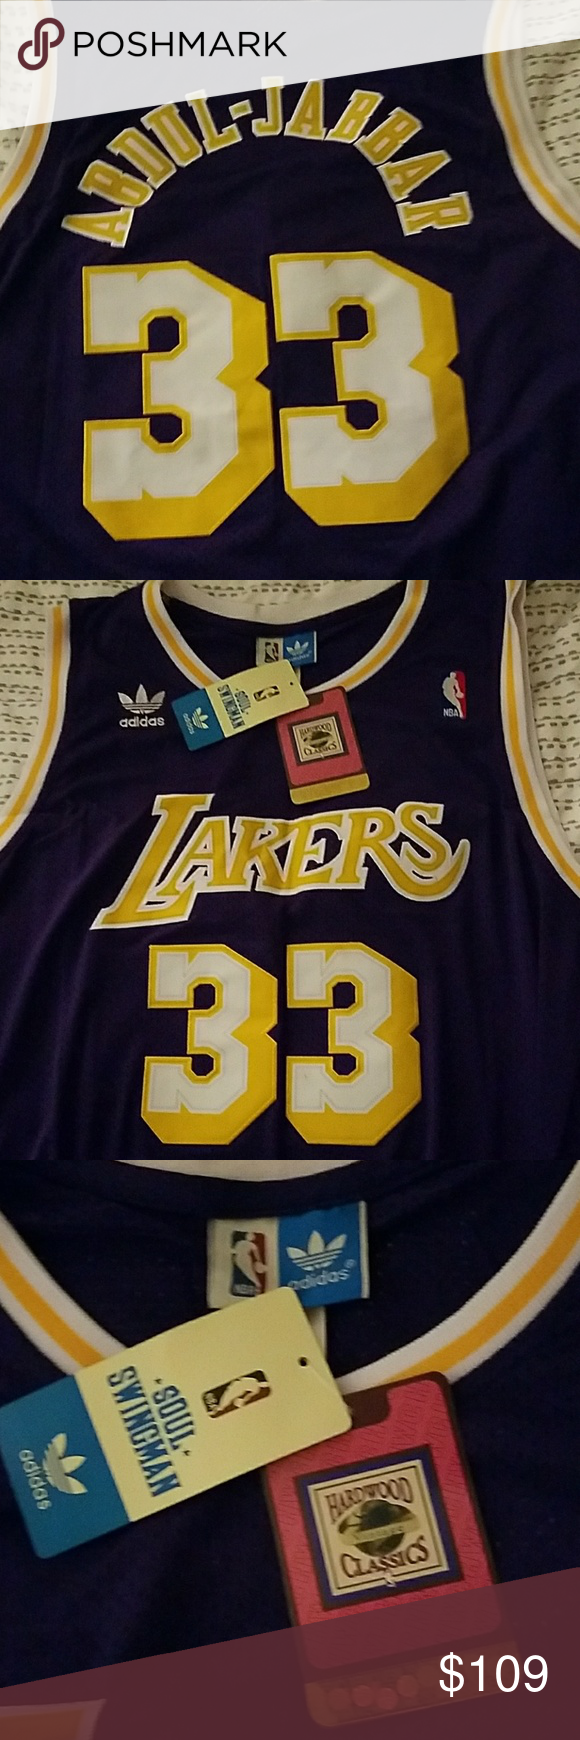 info for 396b3 1c091 jerseys$29 on | fashion trends | Lakers throwback jersey ...